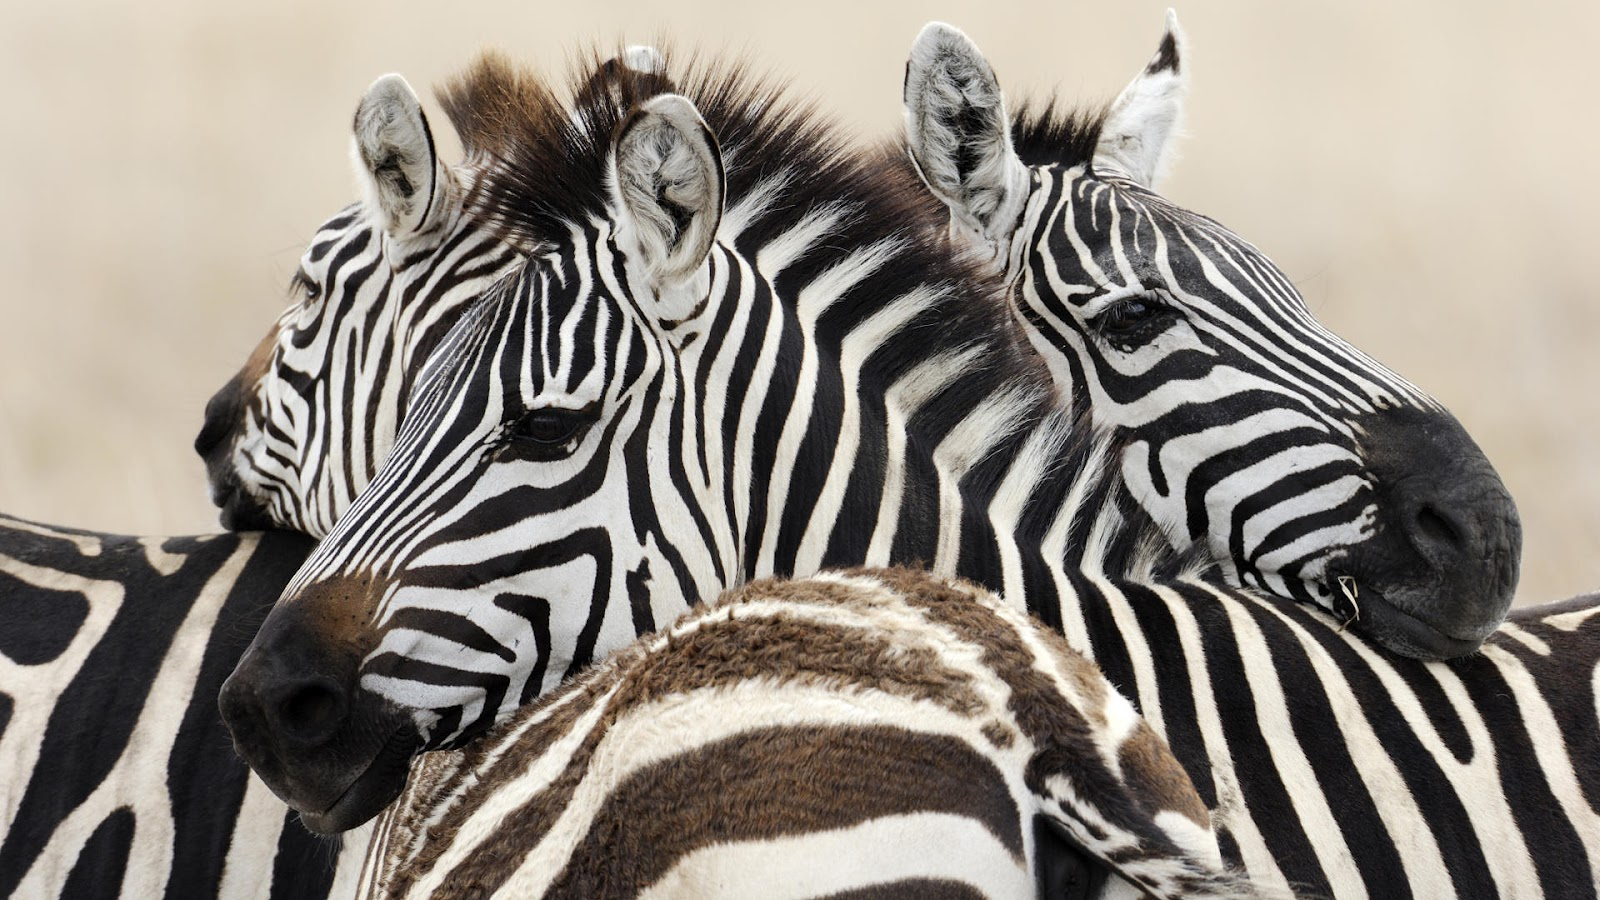 wallpaper with a group of zebras hd animals wallpapers. Black Bedroom Furniture Sets. Home Design Ideas